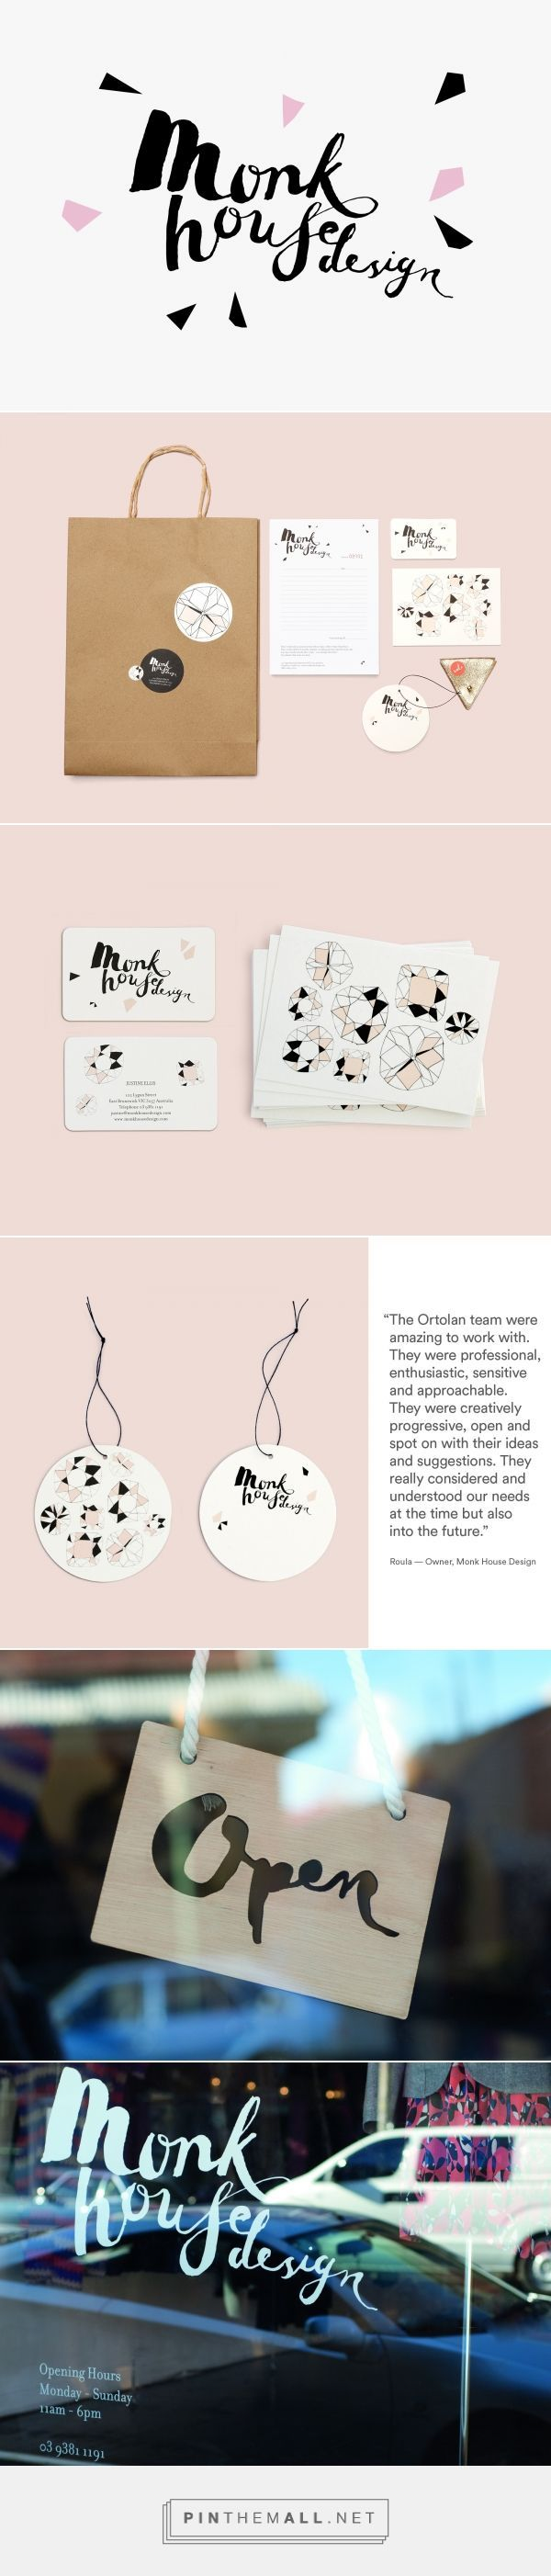 Ortolan : Projects : Branding + Identity : Monk House Design